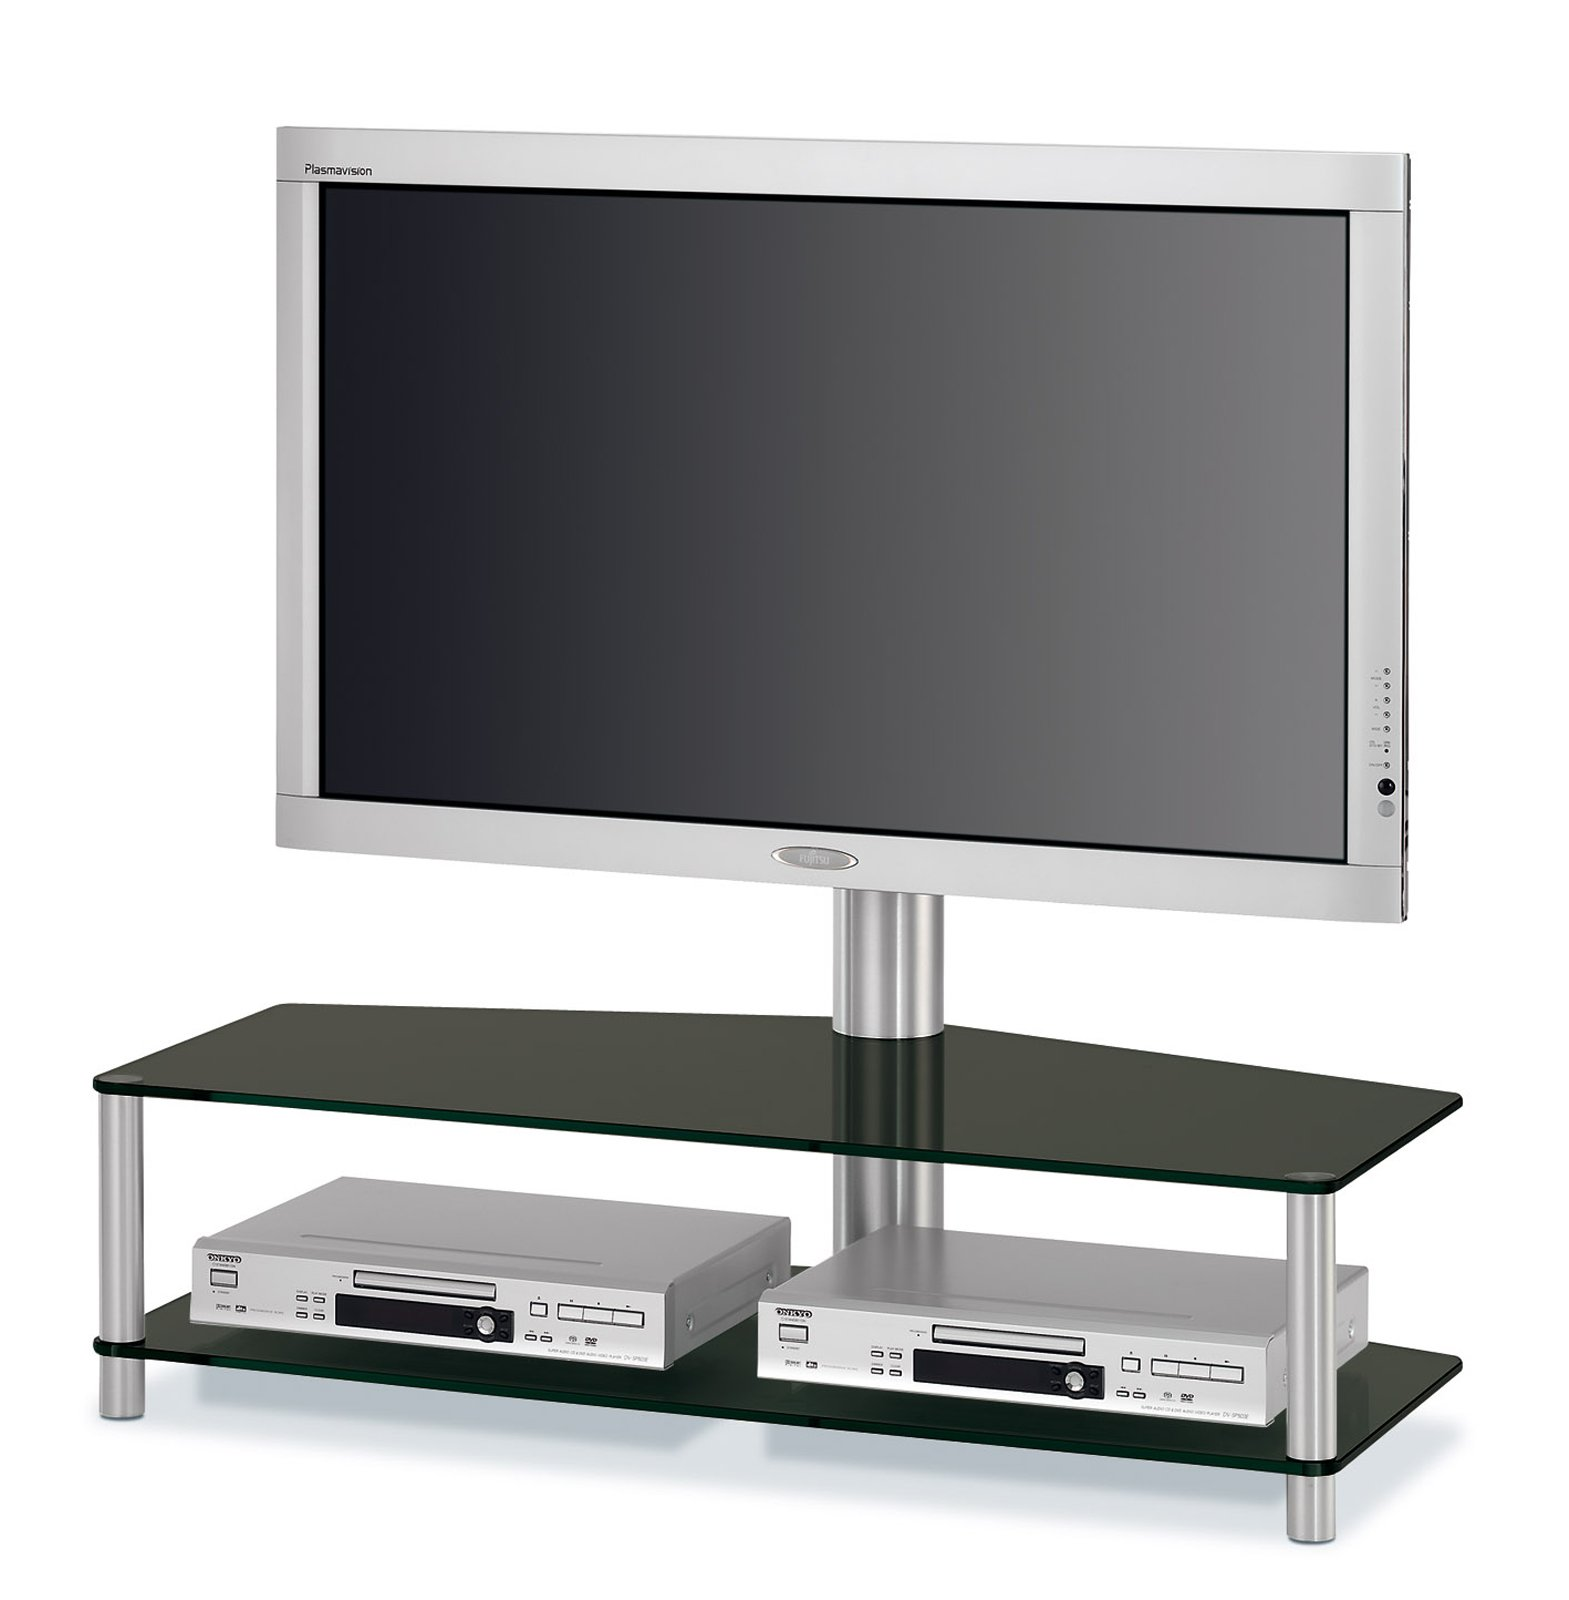 spectral pl151 bg tv stands. Black Bedroom Furniture Sets. Home Design Ideas